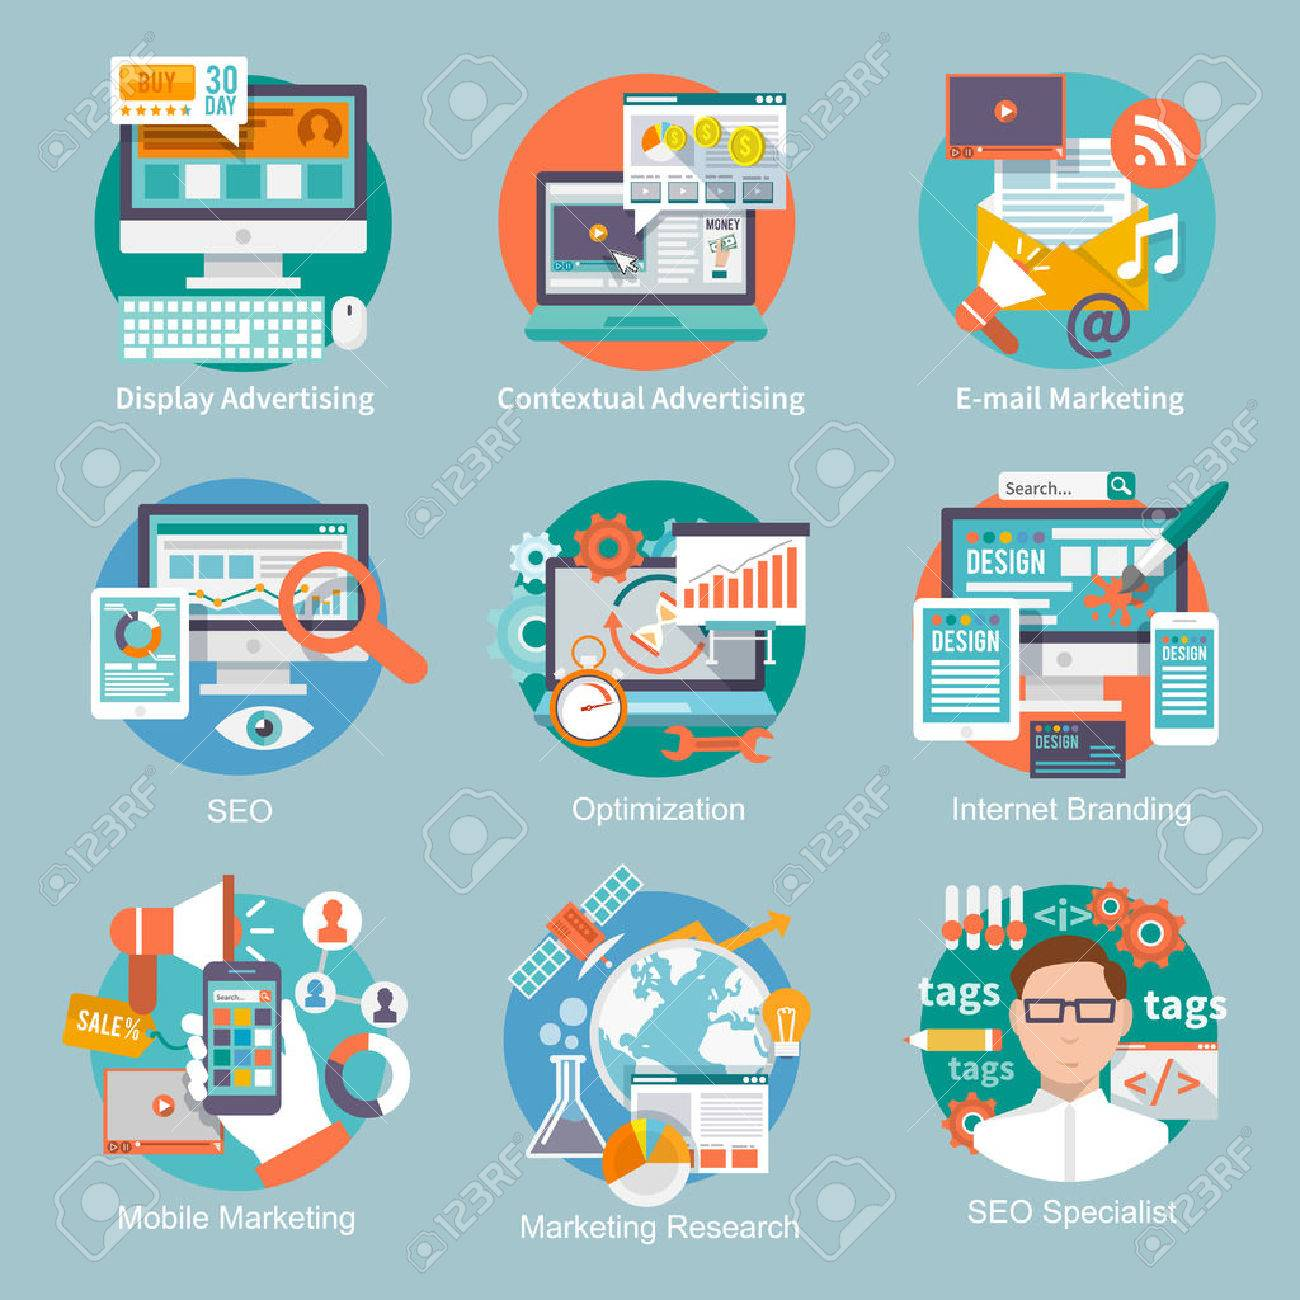 Seo internet marketing flat icon set with display contextual advertising e-mail marketing concepts isolated vector illustration - 34737792